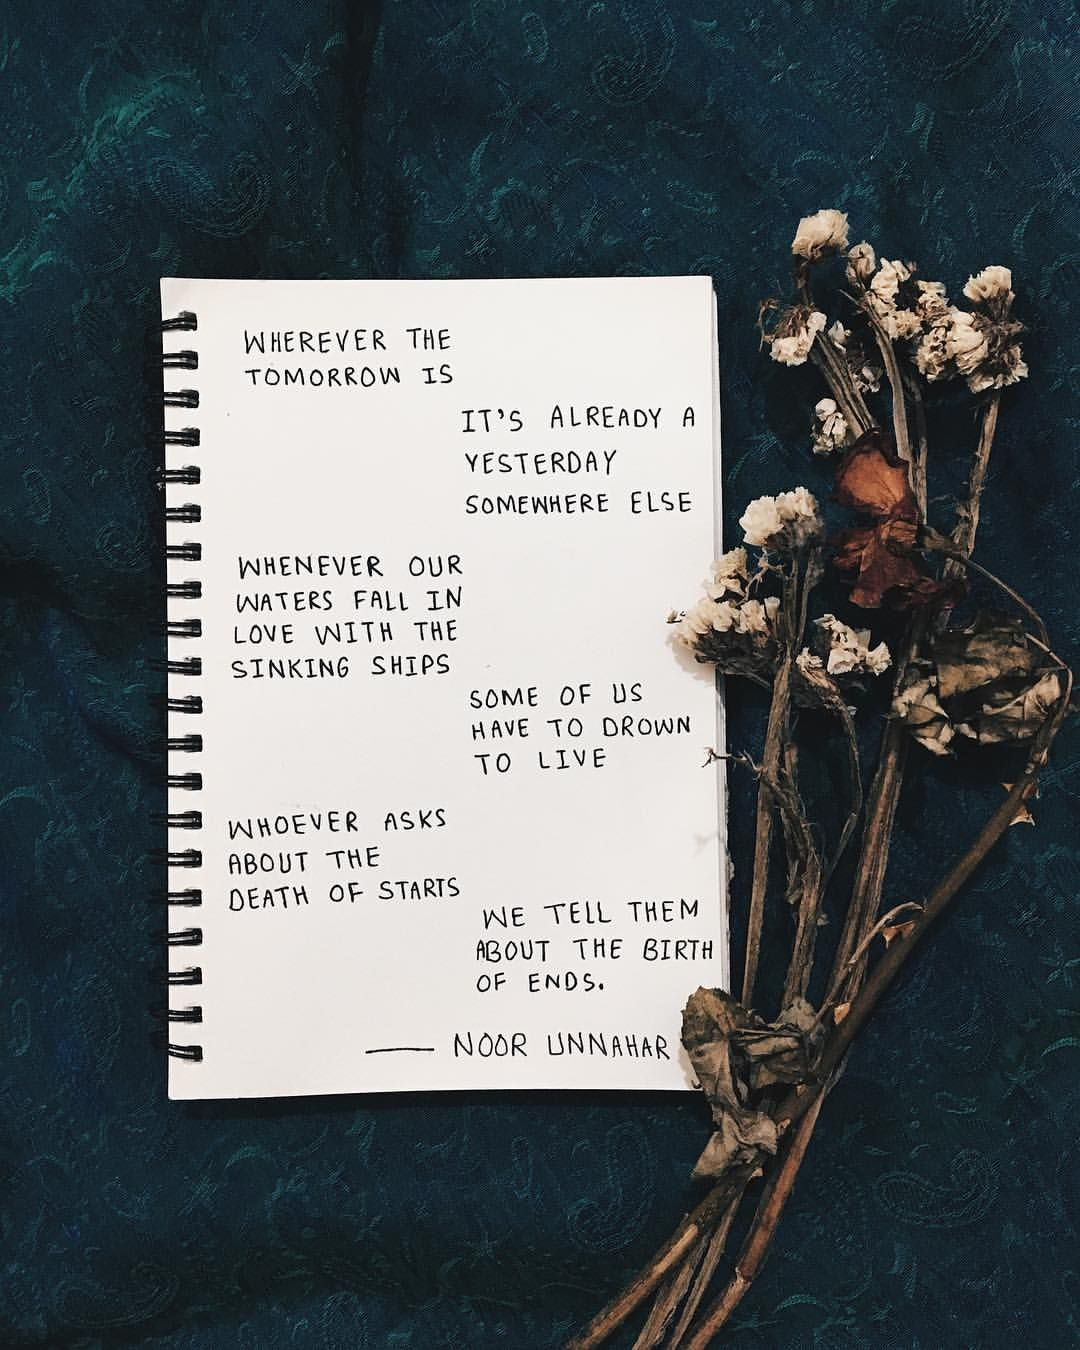 Poetry By Noor Unnahar Words Quotes Writing Handwritten Notebook Journal Art Journaling Writers Of Color Tumblr Indie Pale Grunge Hipsters Aesthetics